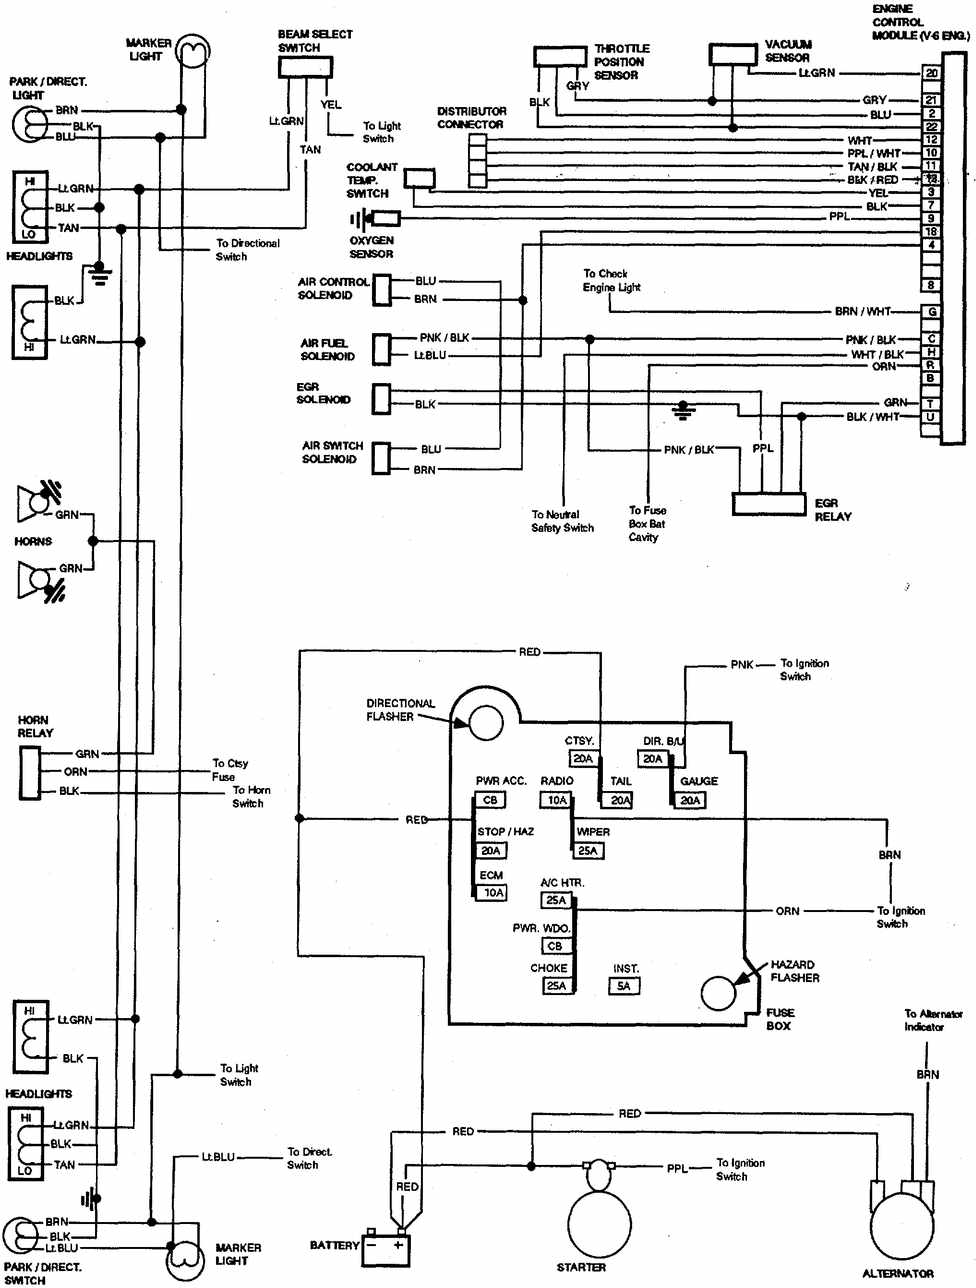 1993 chevy suburban wiring diagram chevy